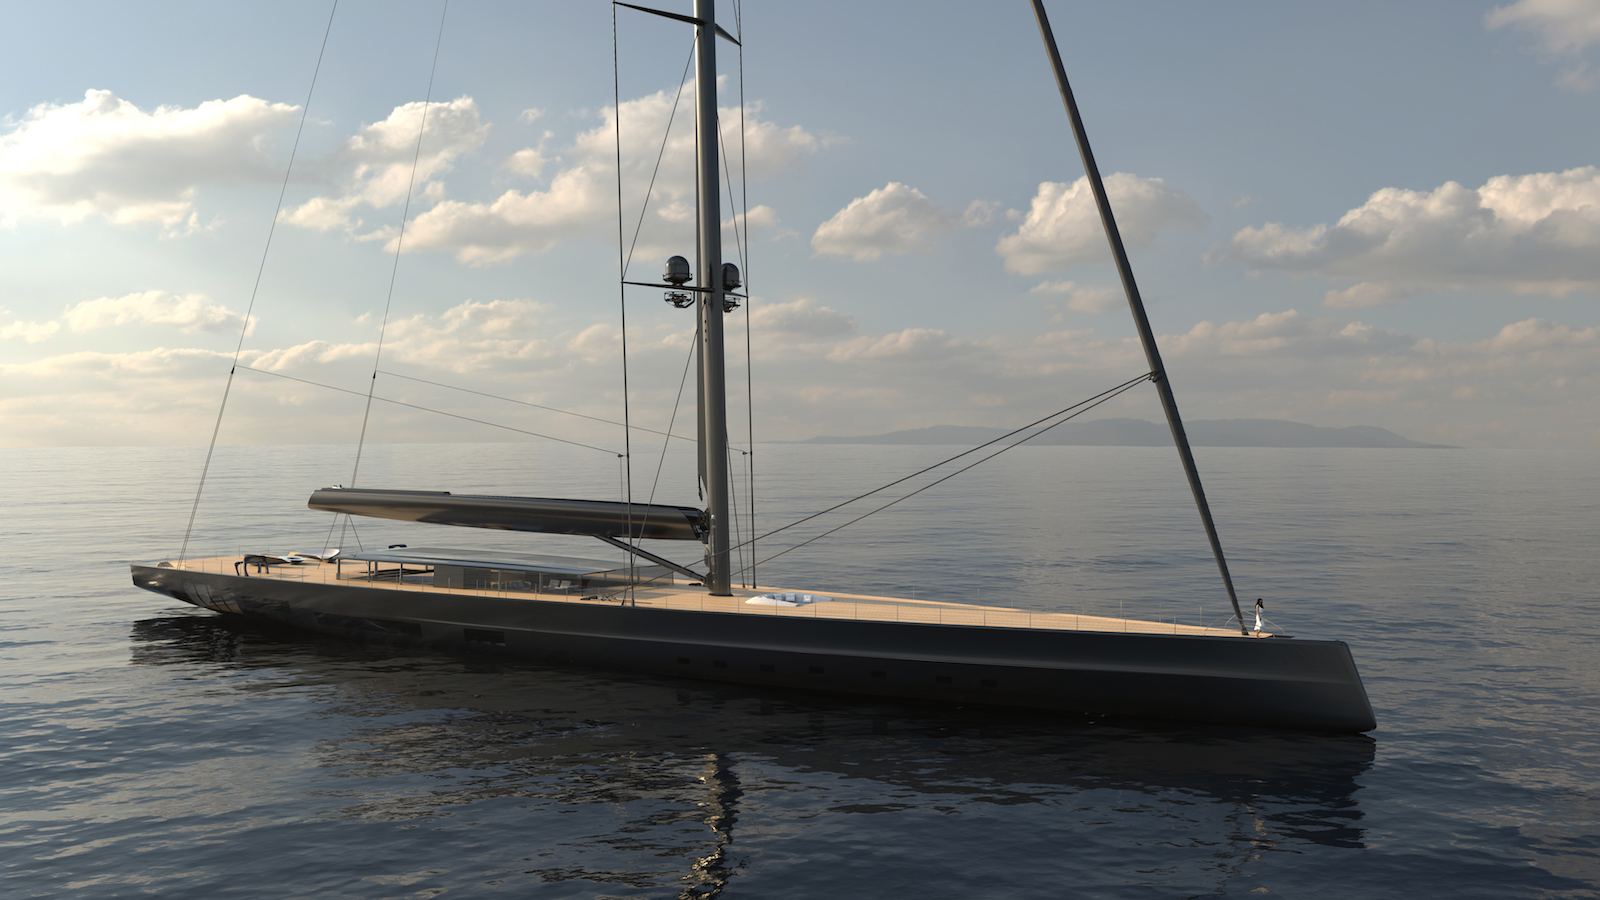 WORLD'S LARGEST SAILING YACHT - SLOOP APEX 850 CONCEPT - at anchor fwd